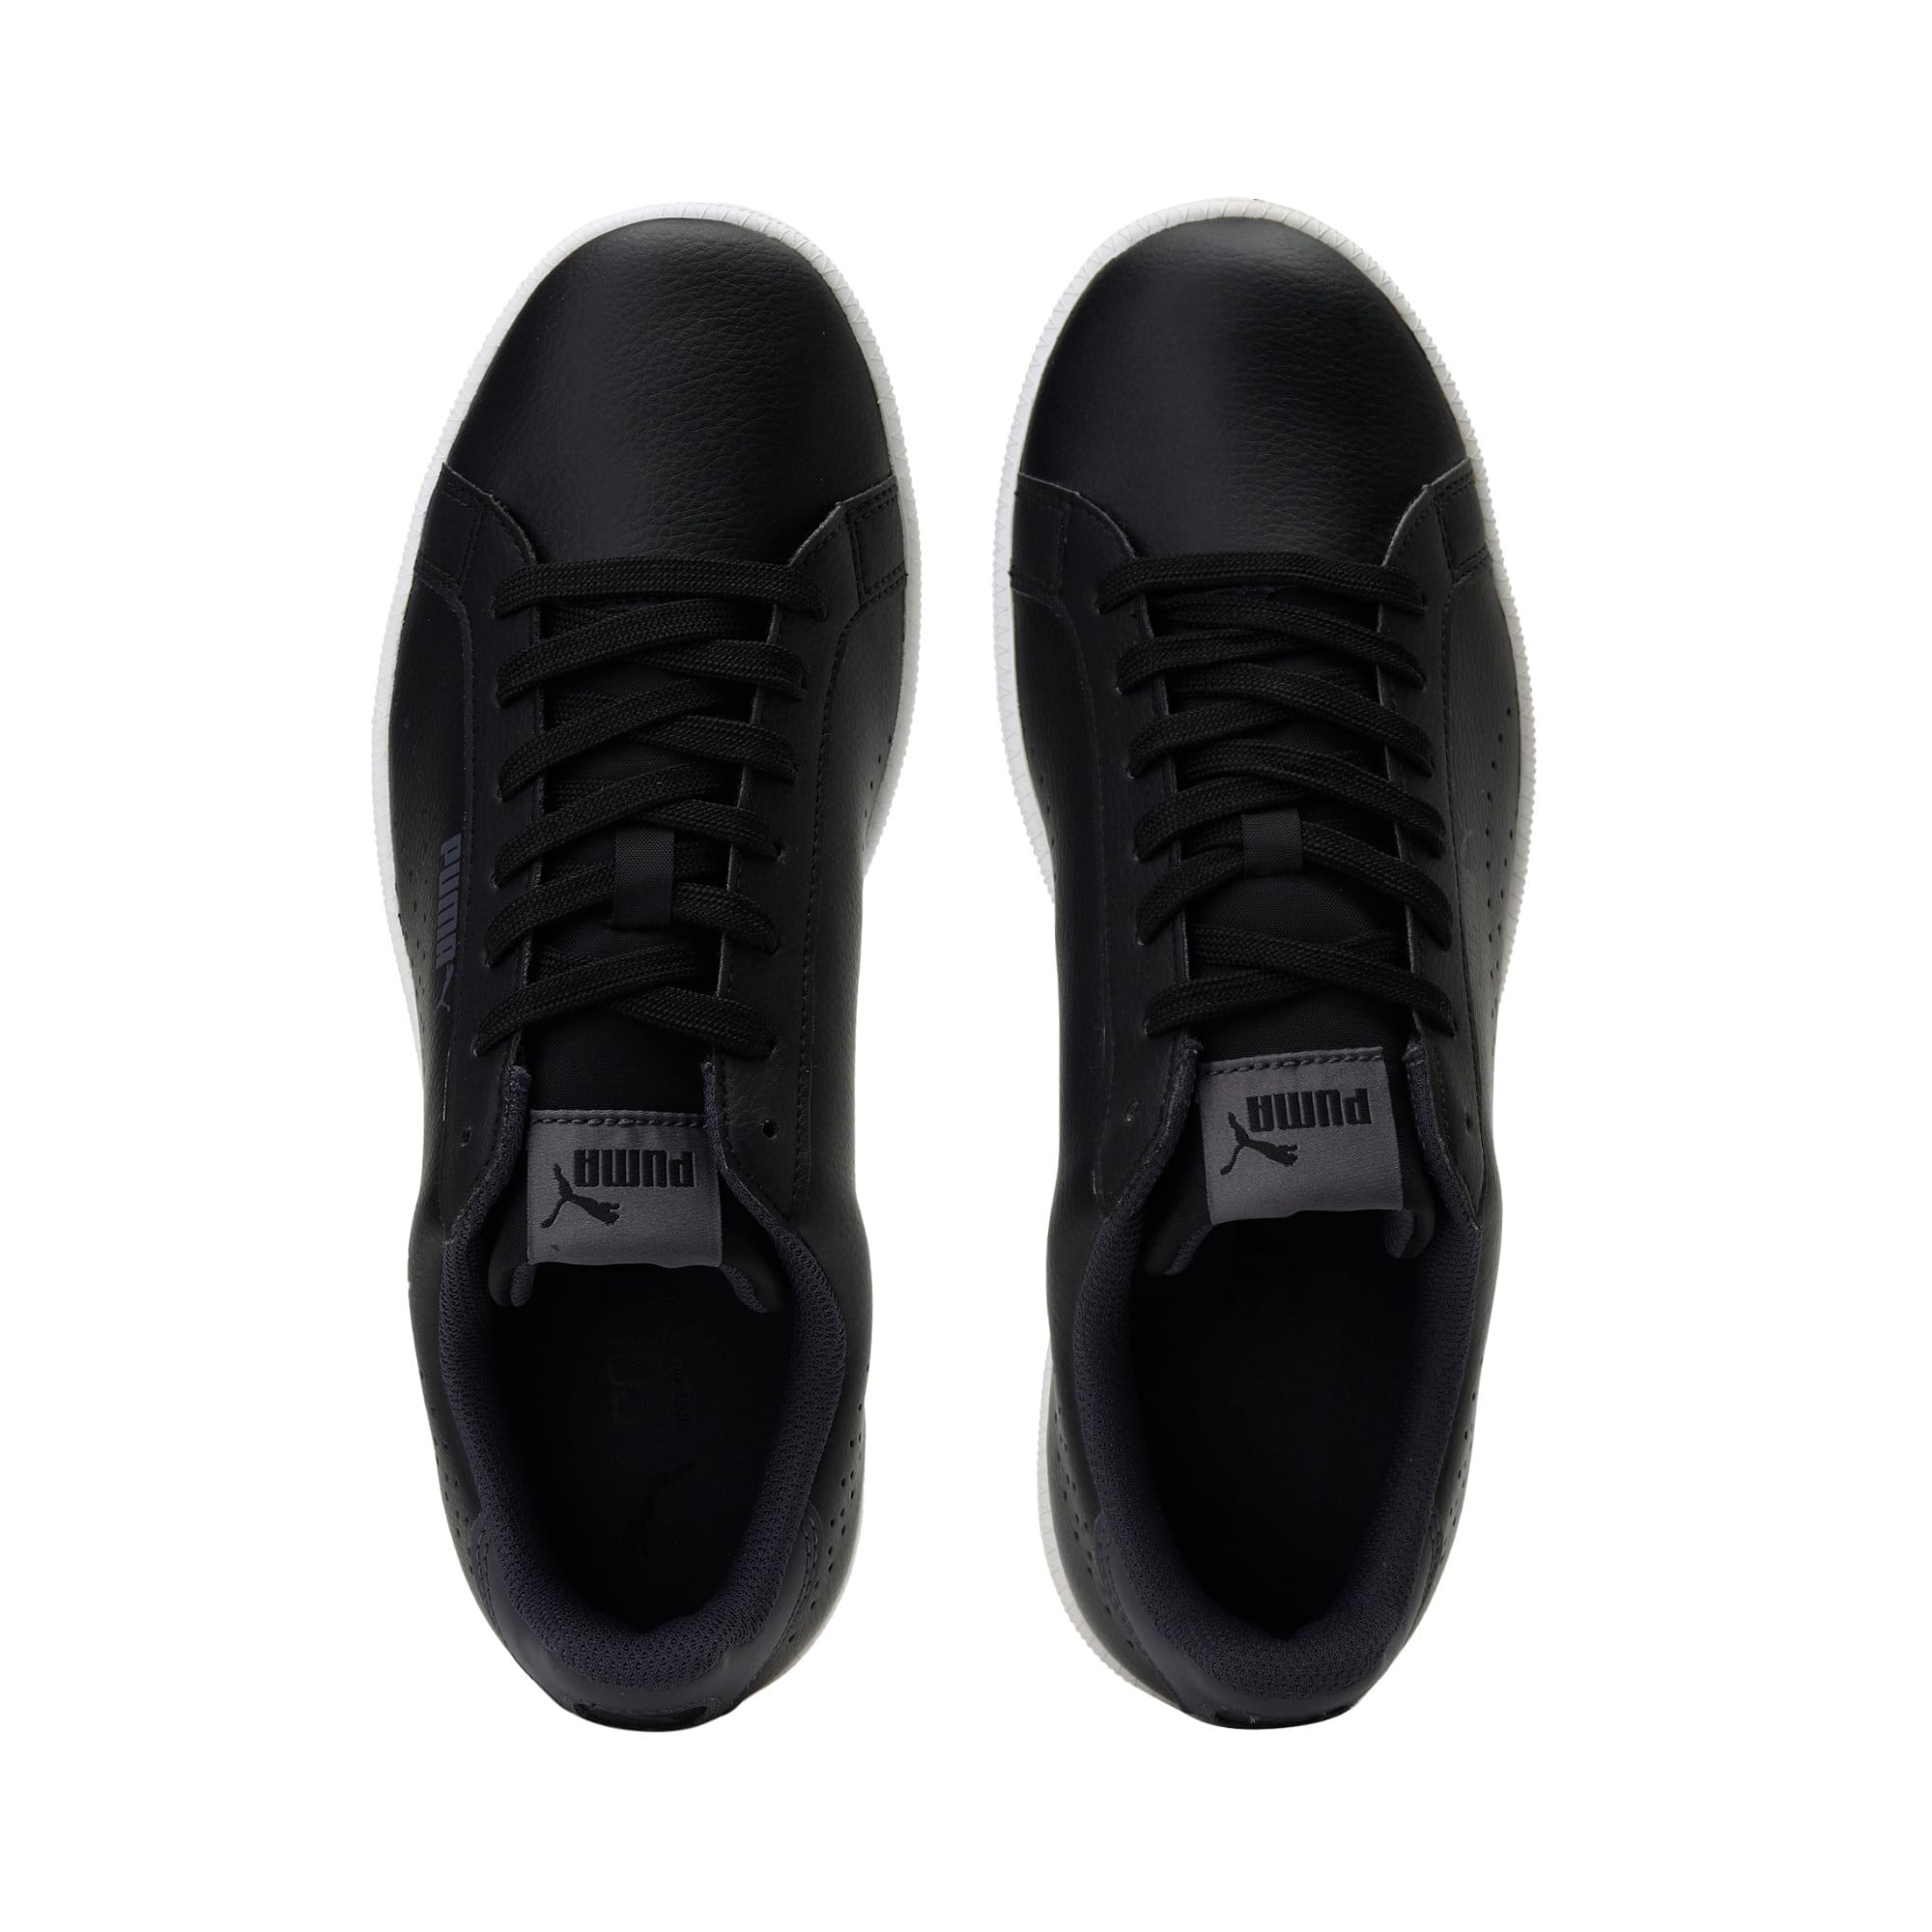 Thumbnail 6 of Smash Perf Trainers, Puma Black-Periscope, medium-IND